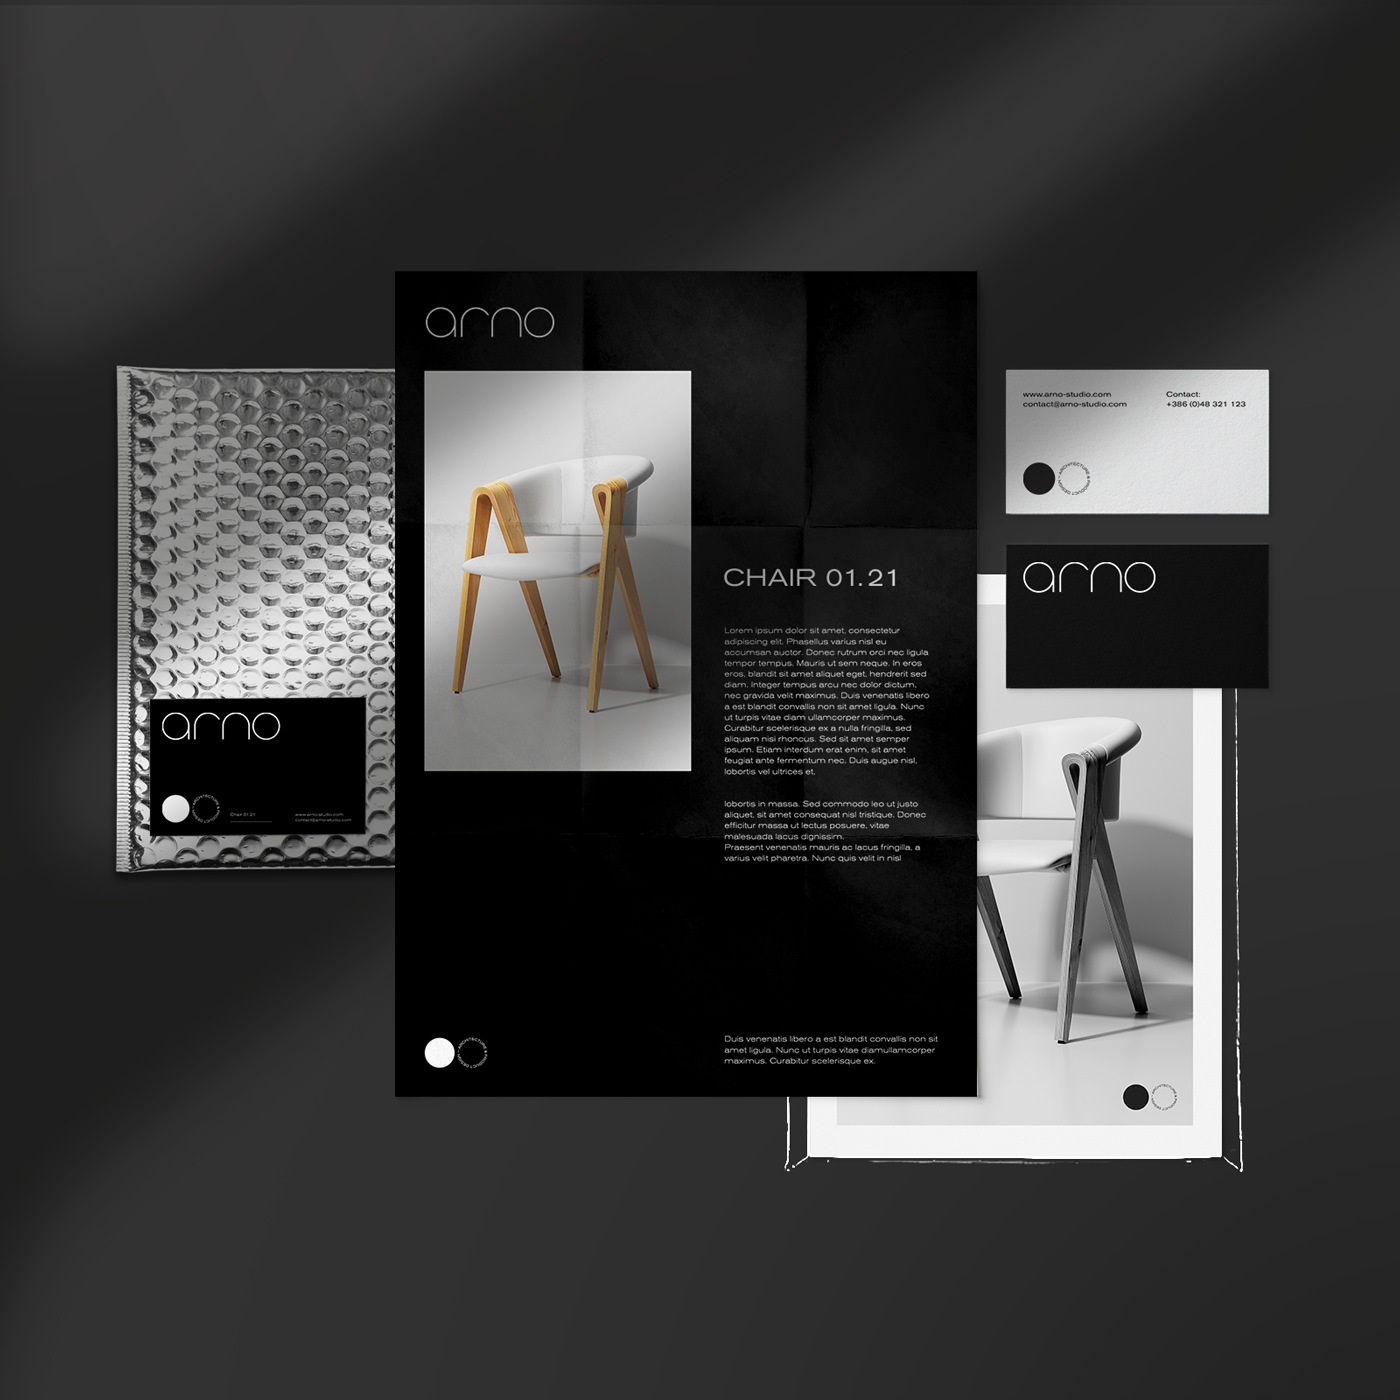 Brand Development and Visual Identity Design for Arno Architecture and Product Design